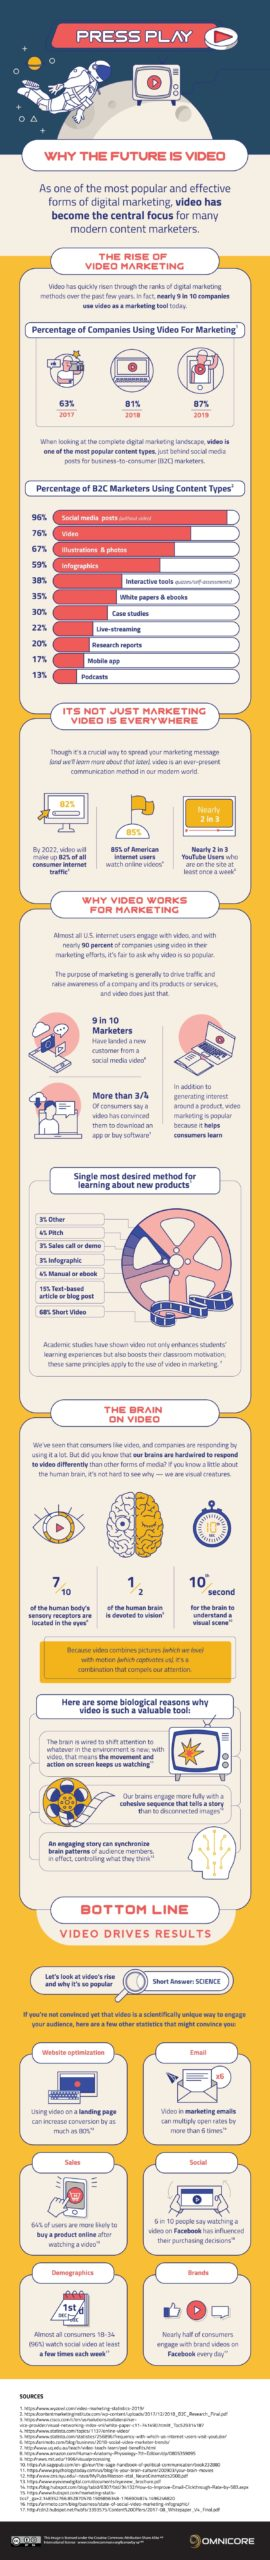 Why the future is video infographic